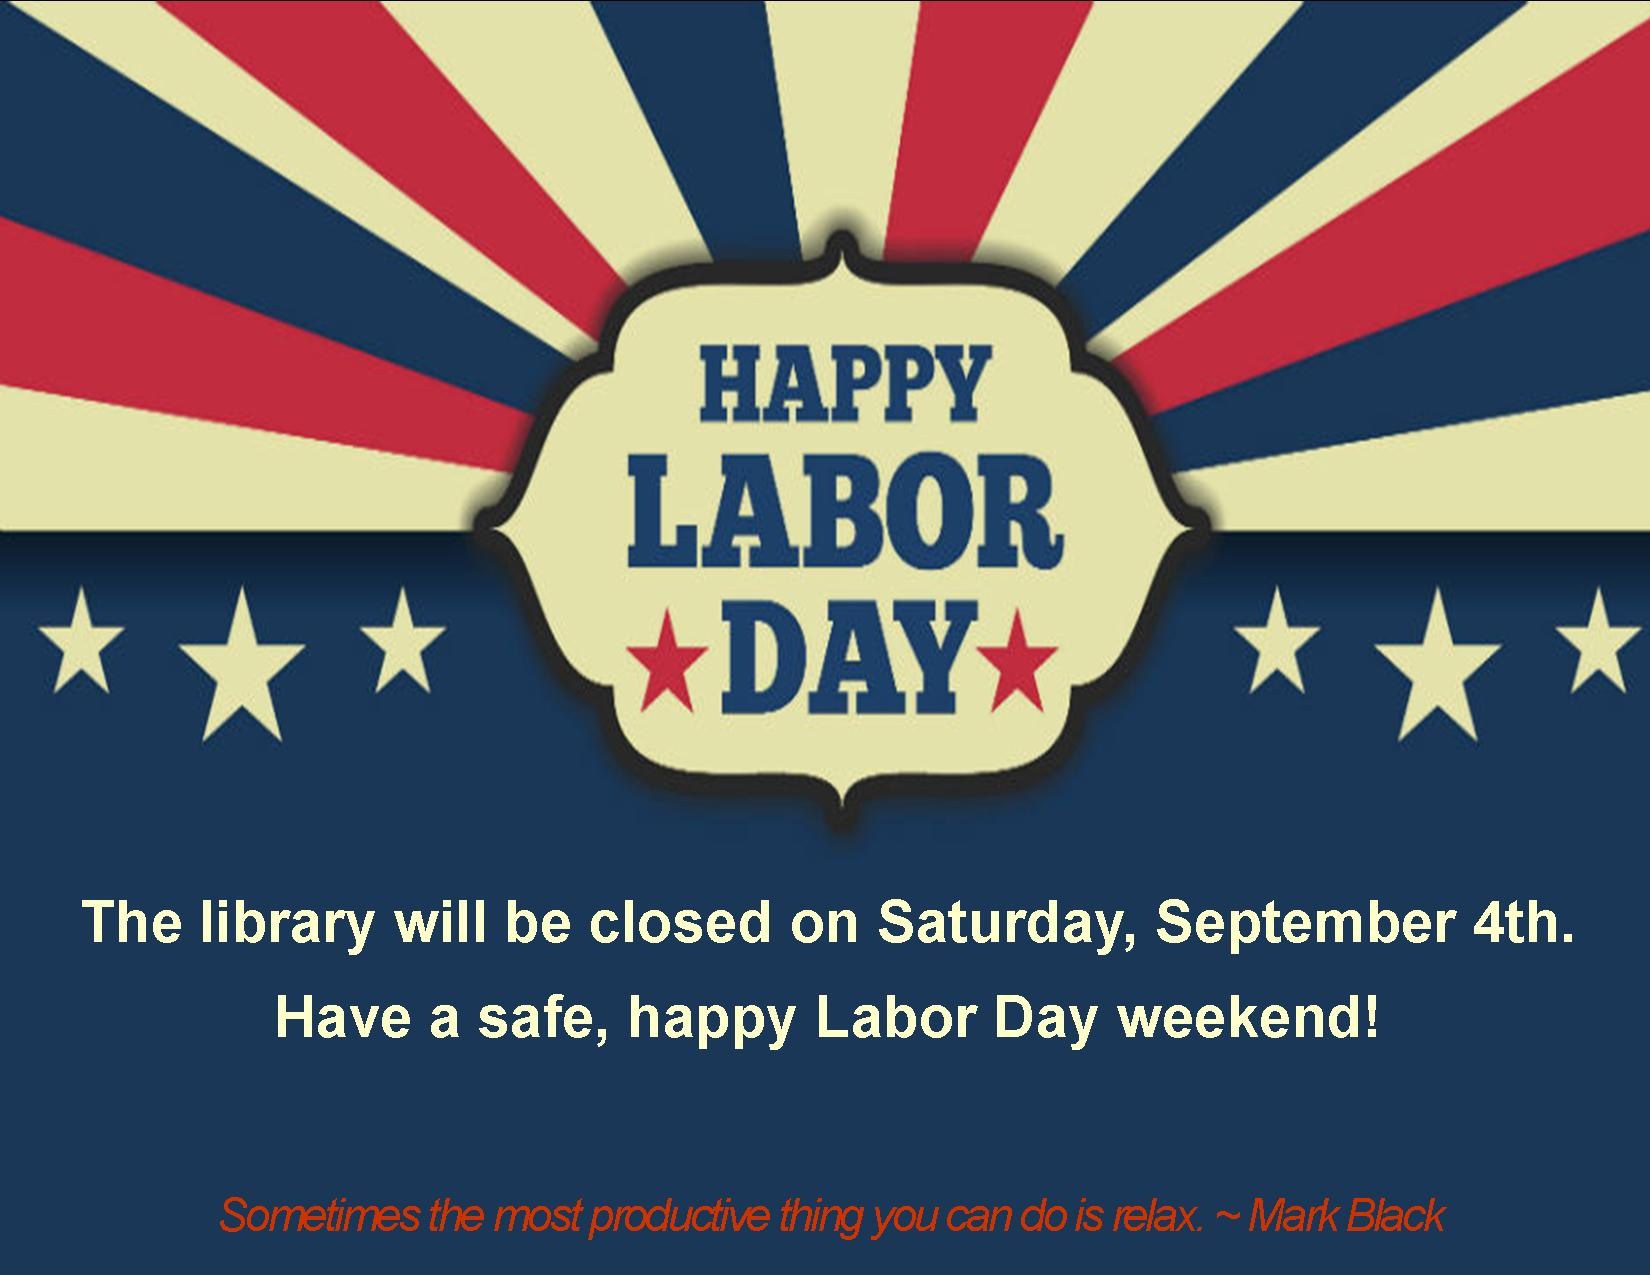 Library closed Saturday, Sept. 4th. Happy Labor Day weekend!